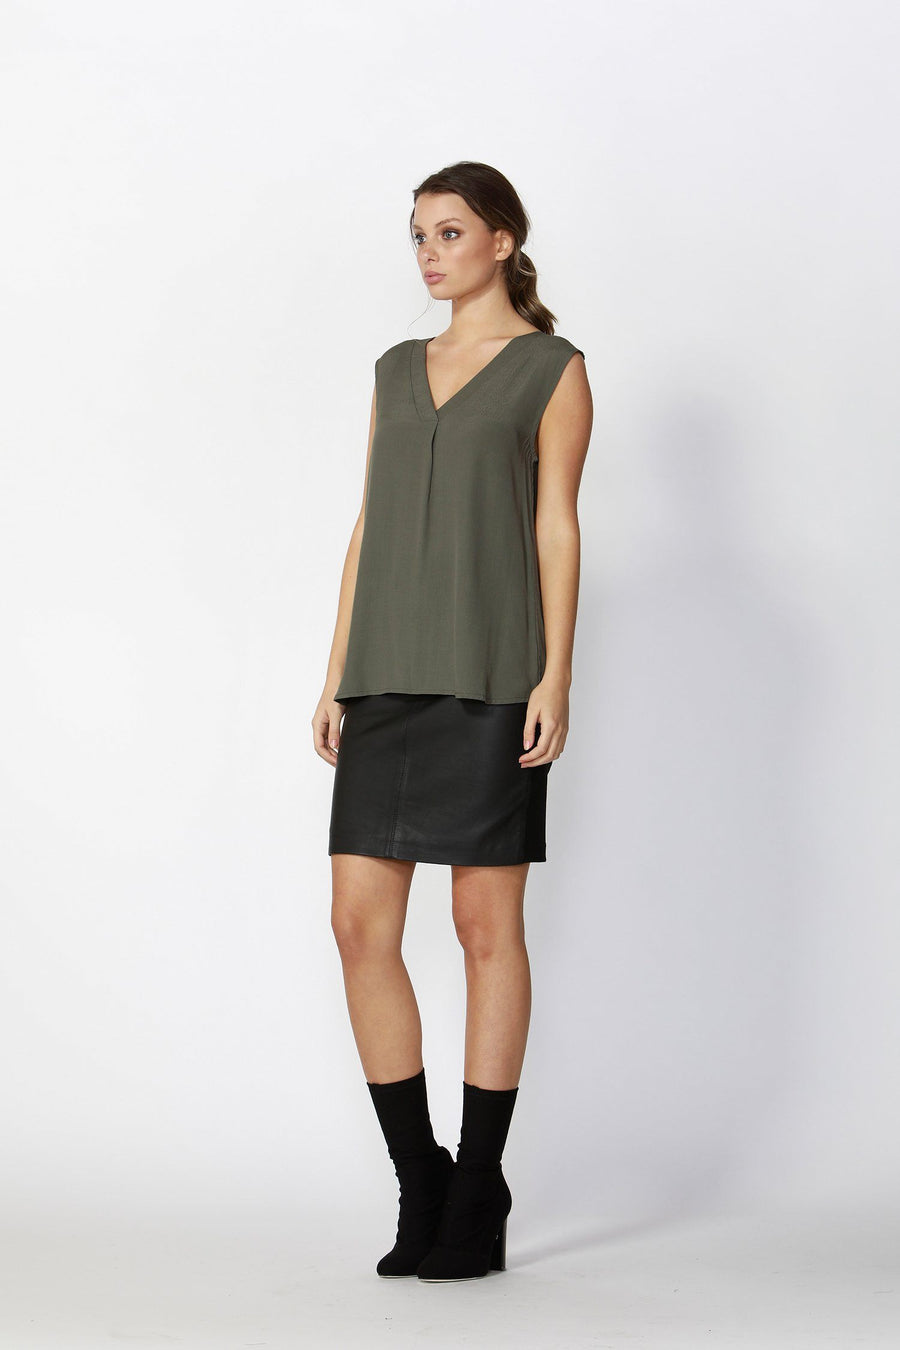 Flora Sleeveless V-Neck Top in Khaki